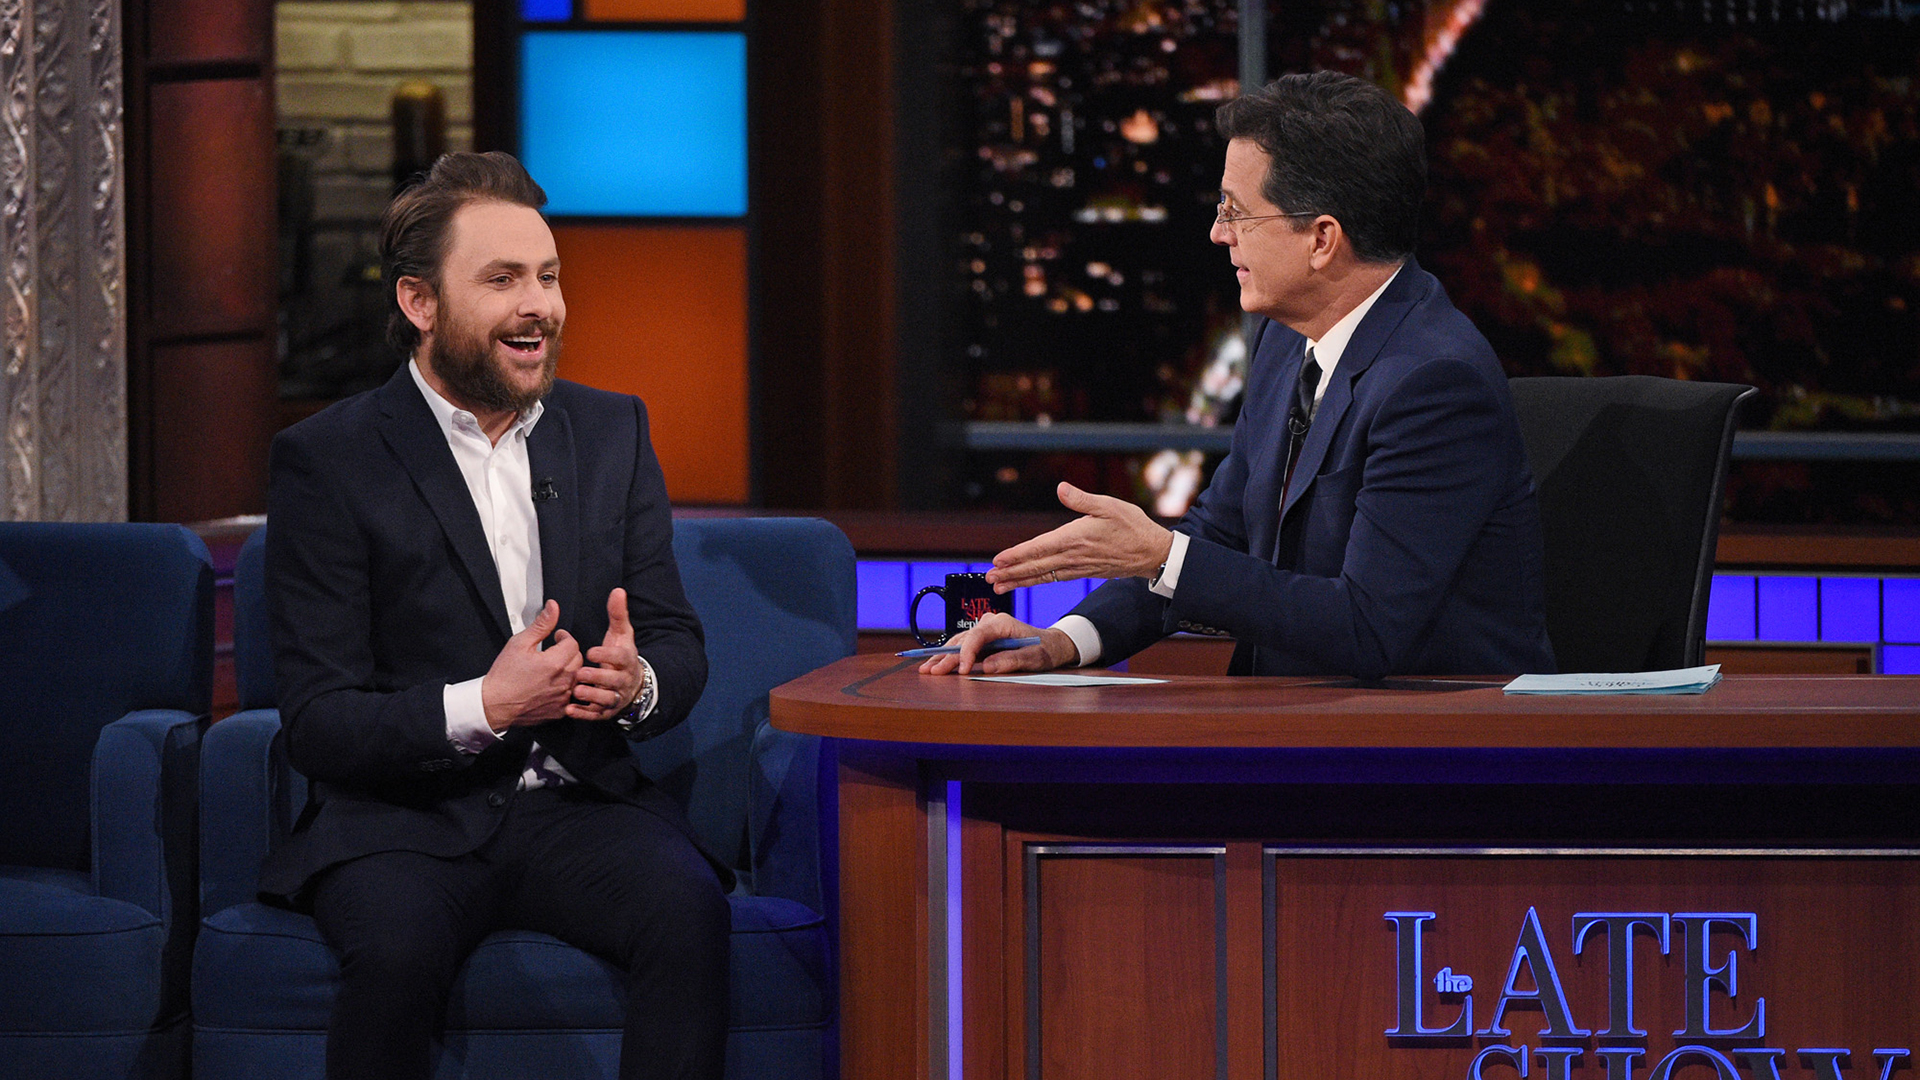 Charlie Day and Stephen Colbert